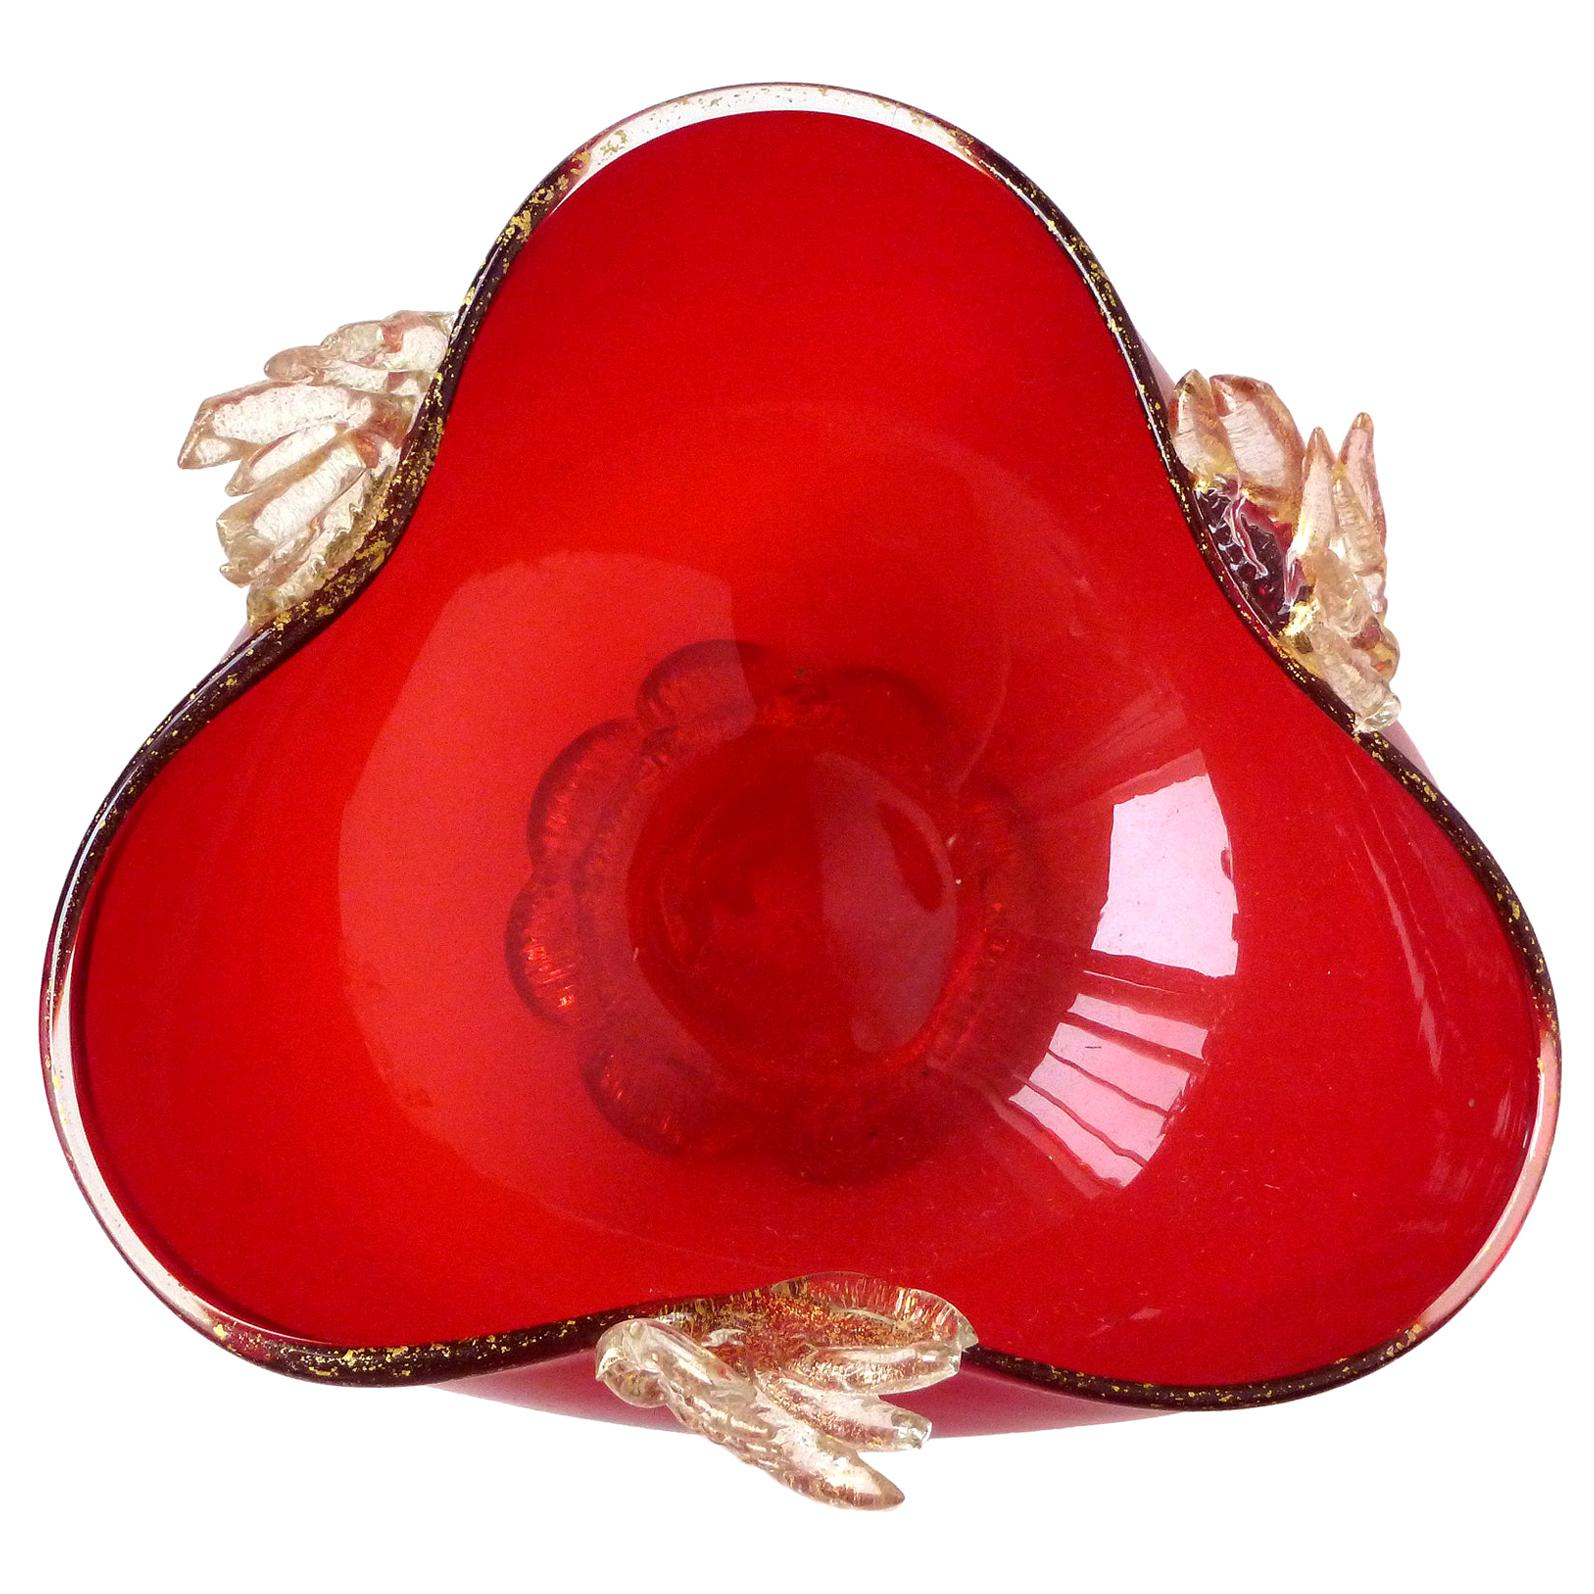 Murano Venetian Bright Red Applied Gold Leafs Italian Art Glass Footed Bowl Dish